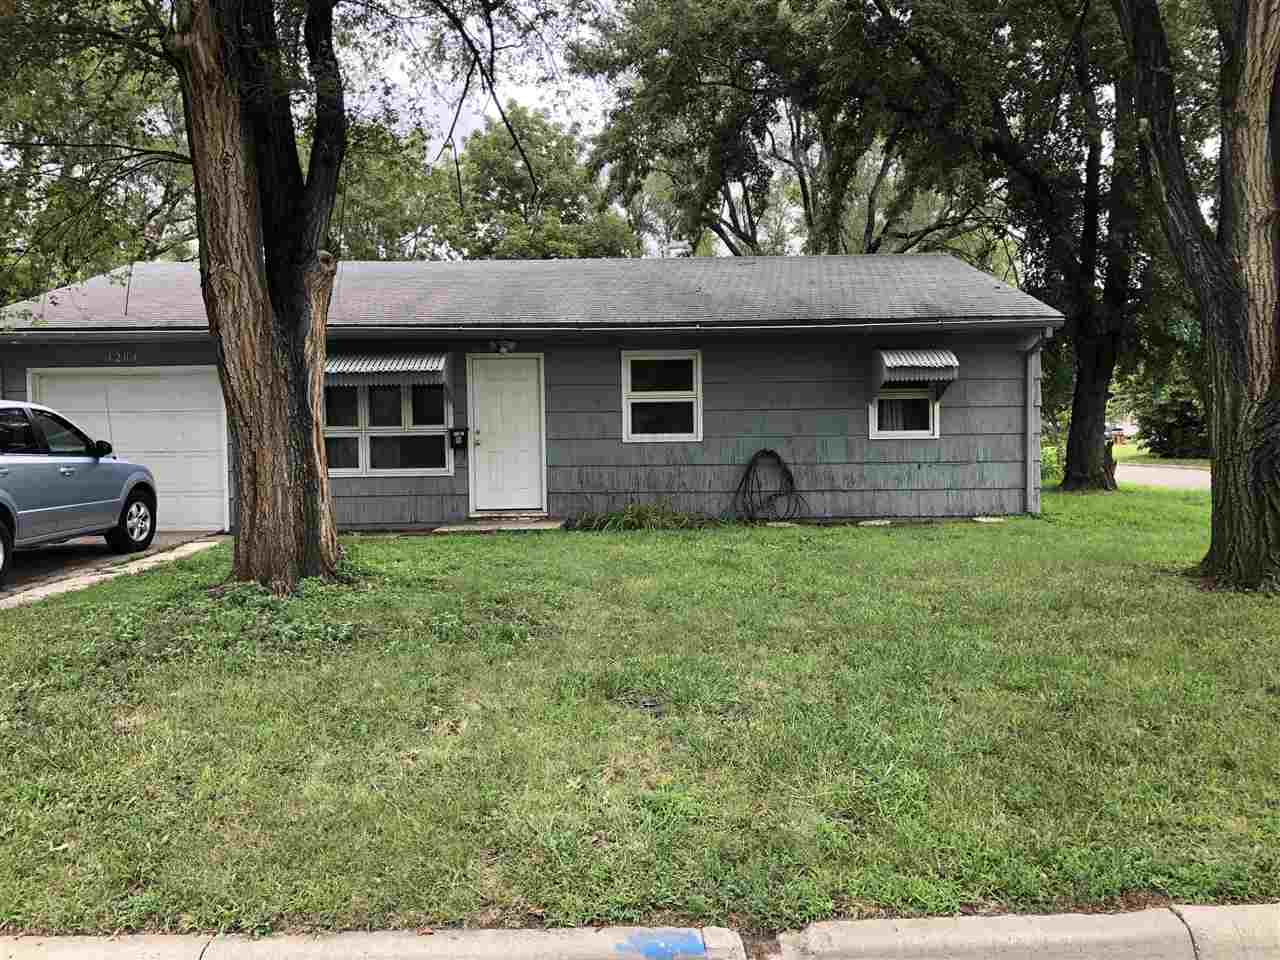 An opportunity to be an investment home or a residential home.  3 bed - 1 bath - fenced in yard - new interior paint.  Call Brittany at 7855712202 with questions for a showing.